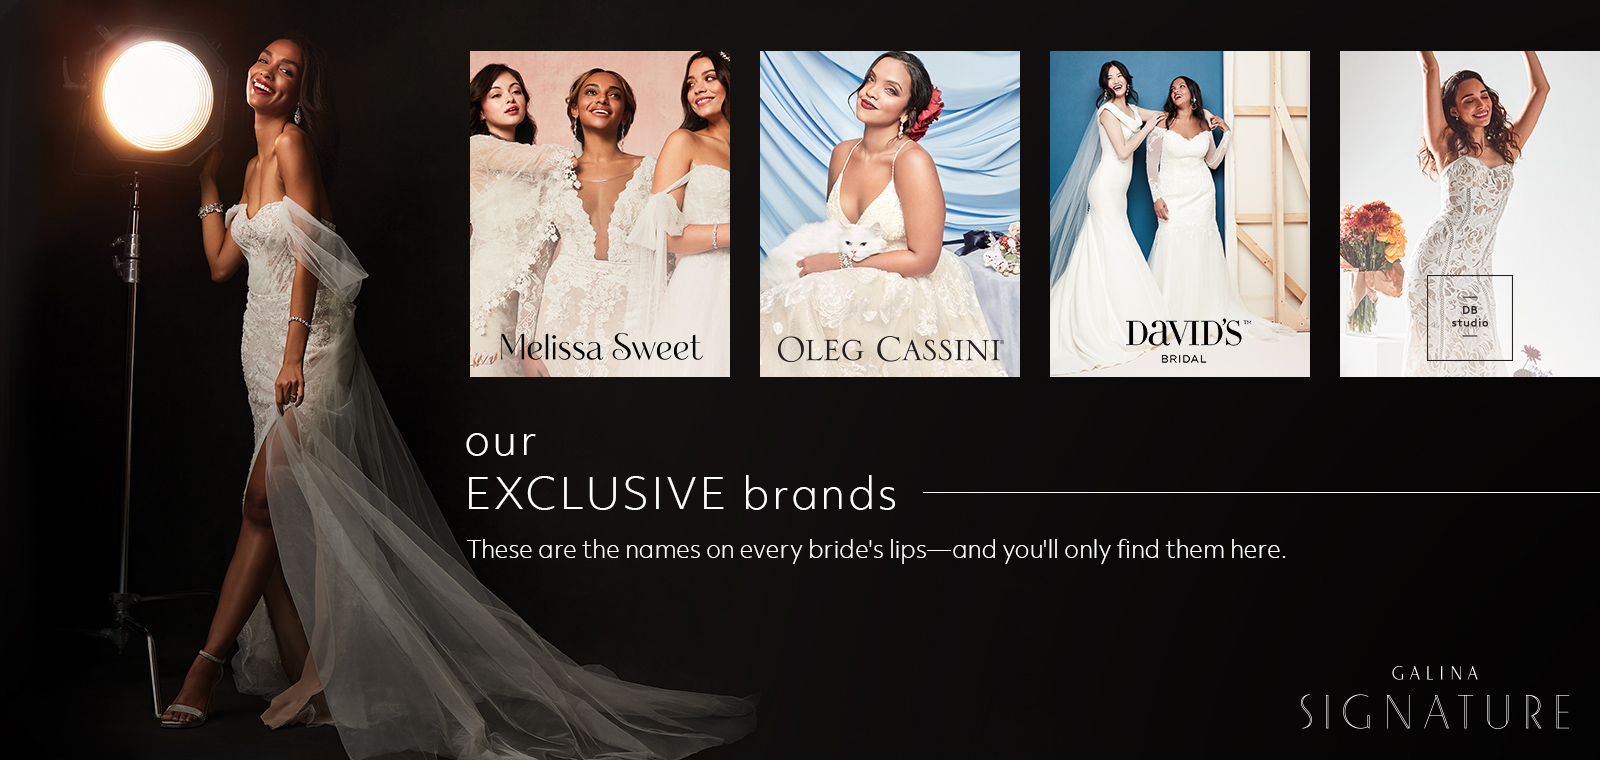 our exclusive brands - these are the names on every bride's lips - and you'll only find them here.